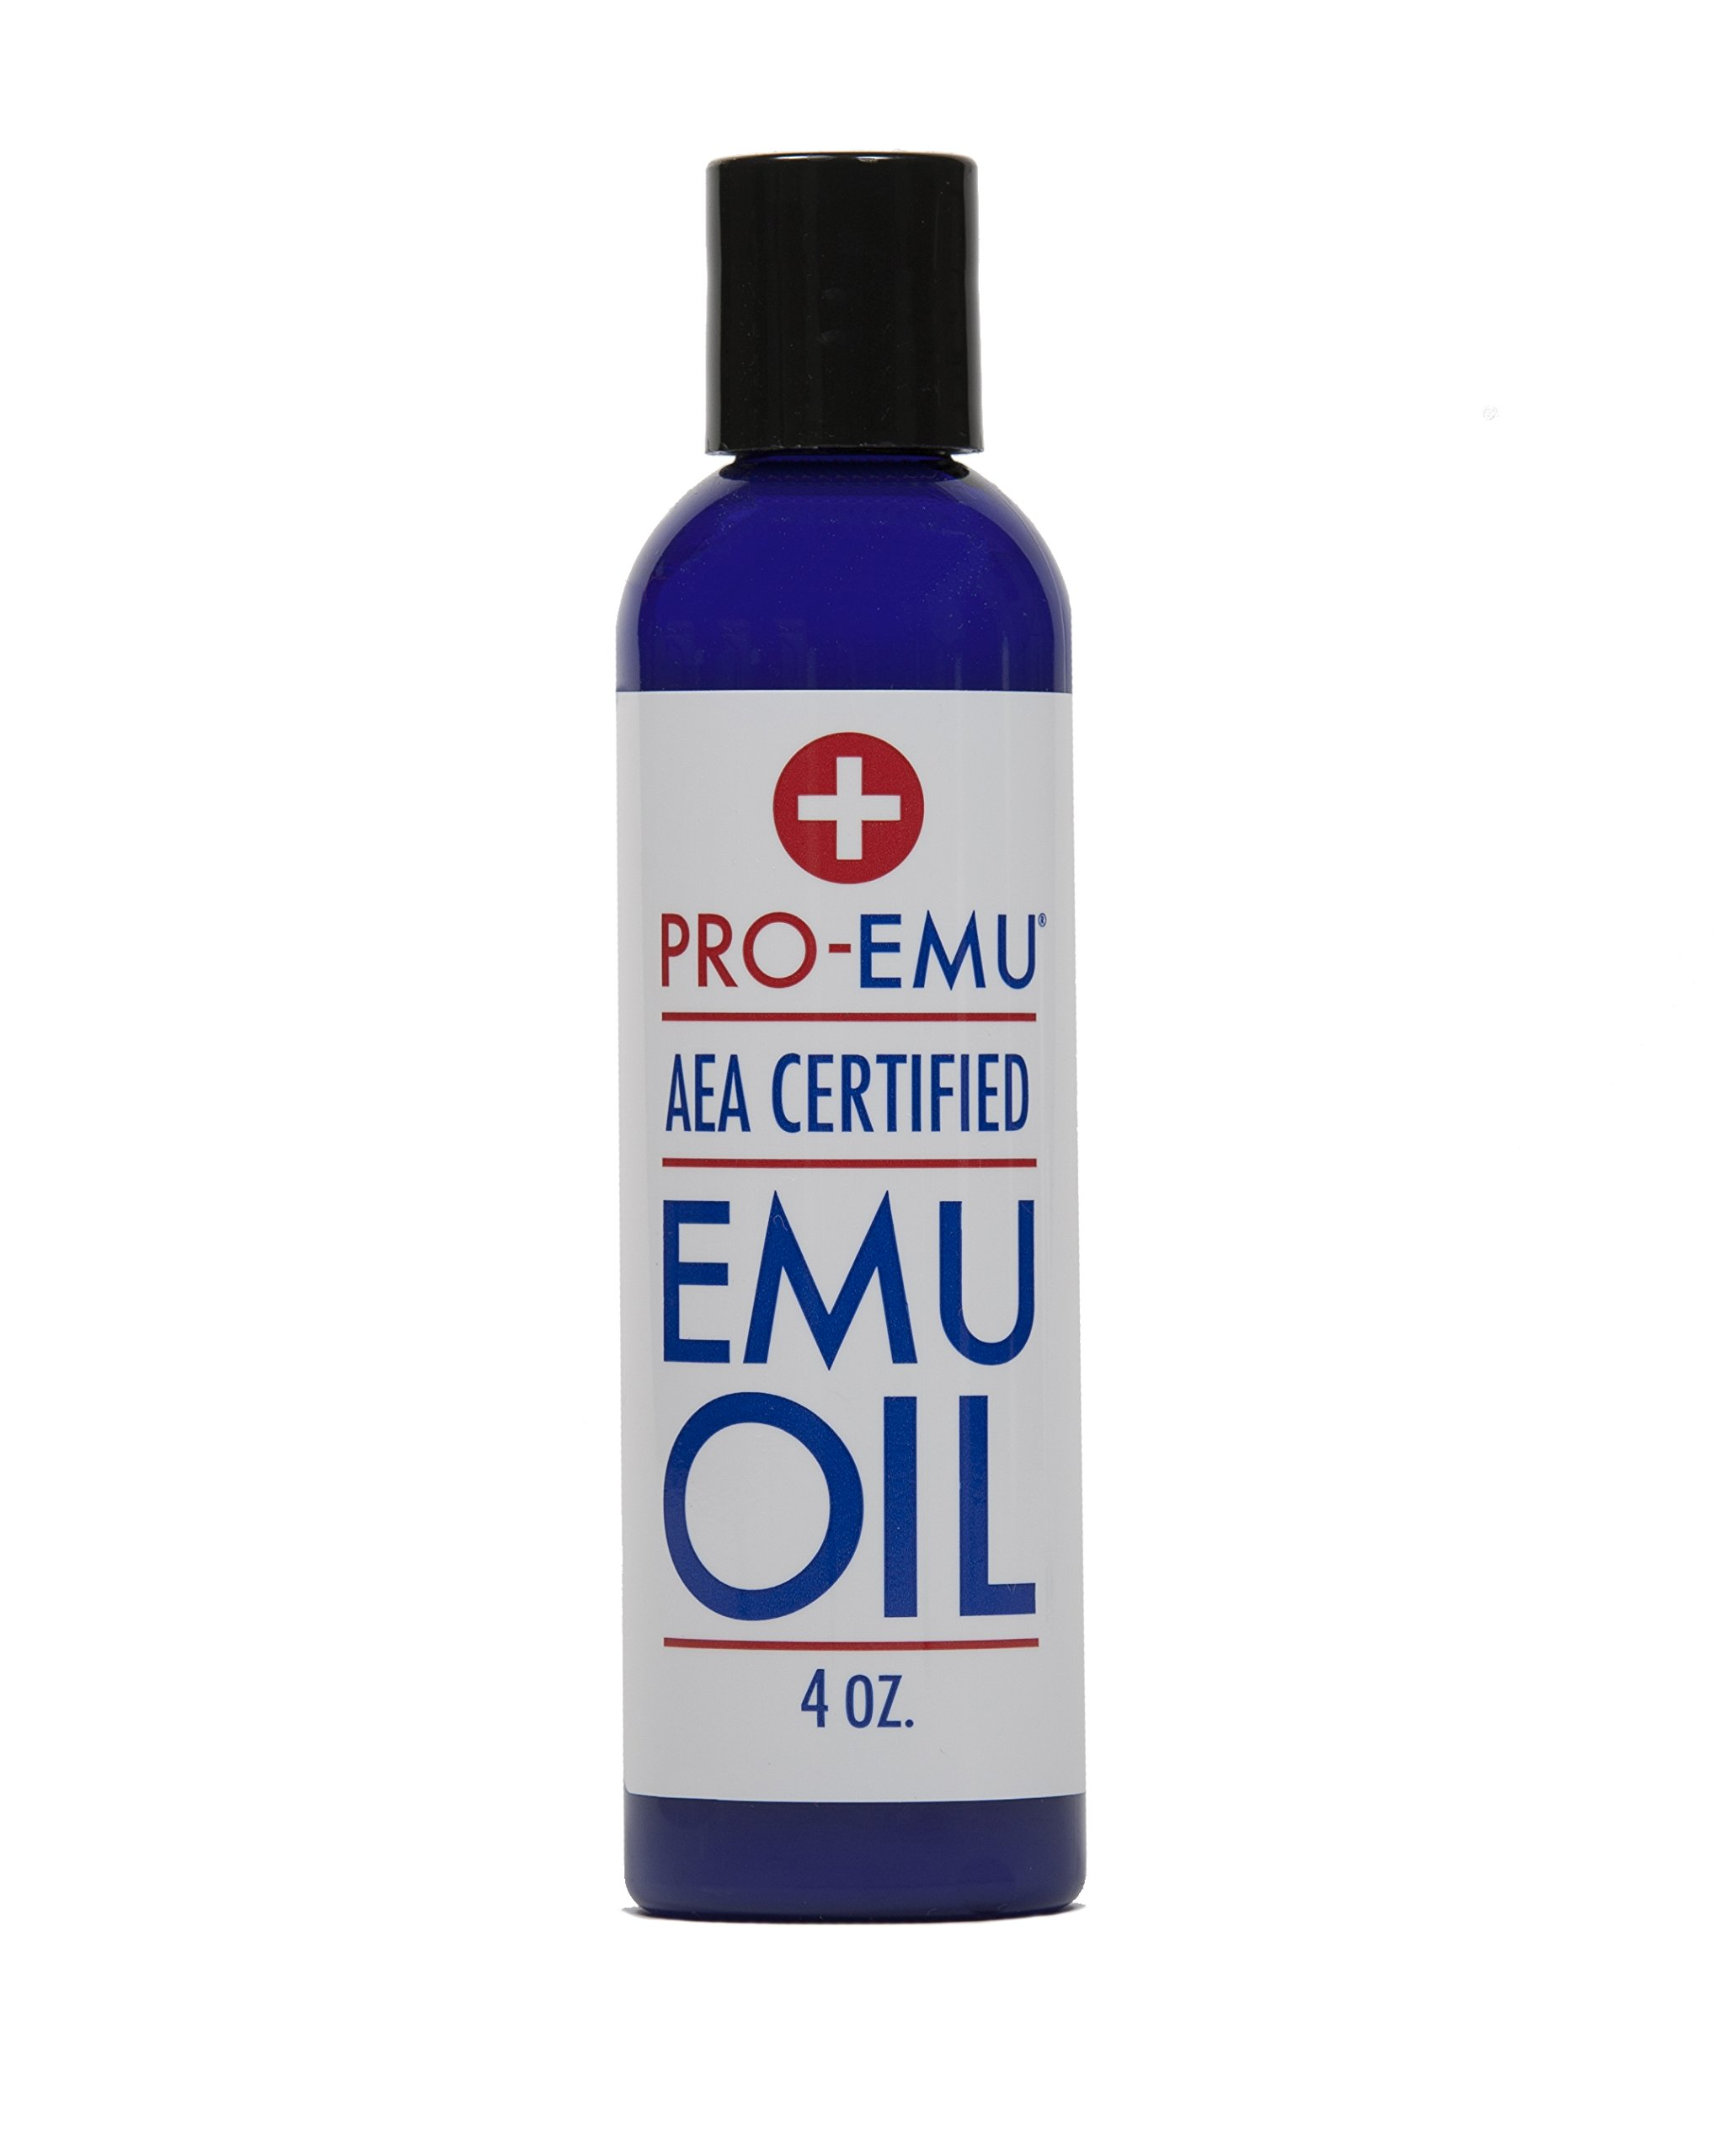 PRO EMU OIL (4 oz) All Natural Emu Oil - AEA Certified - Made In USA - Best All Natural Oil for Face, Skin, Hair and Nails.